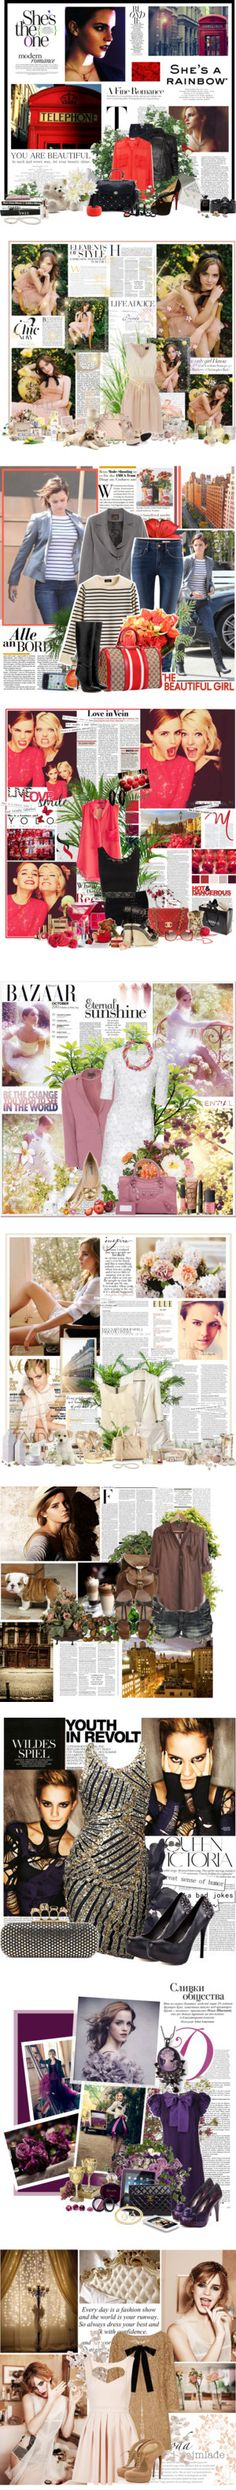 """""""Emma Watson"""" by bailybitch ❤ liked on Polyvore"""